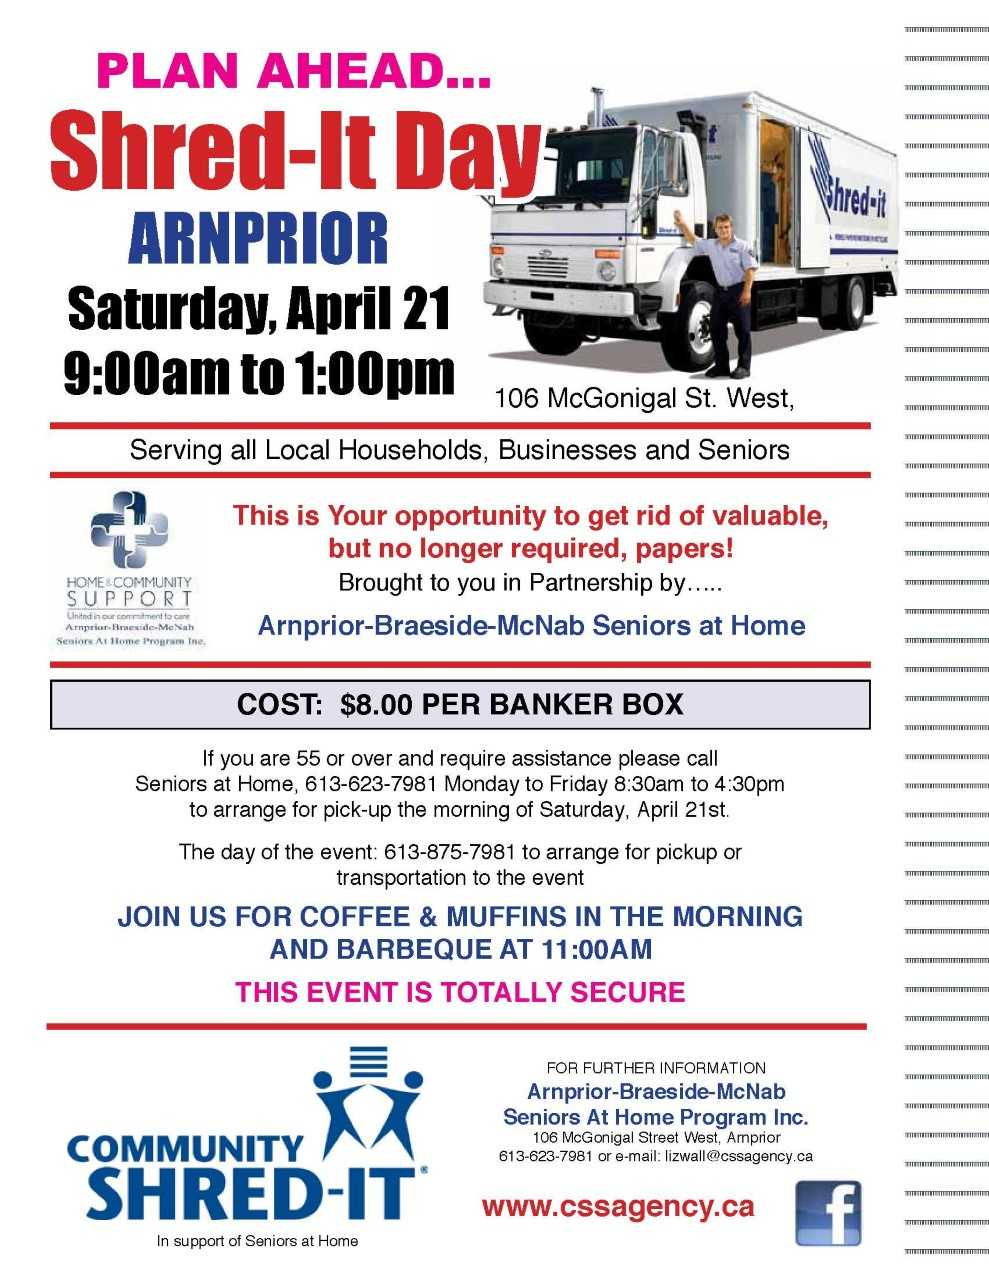 Shred-It Day 2018 - The Township of McNab/Braeside